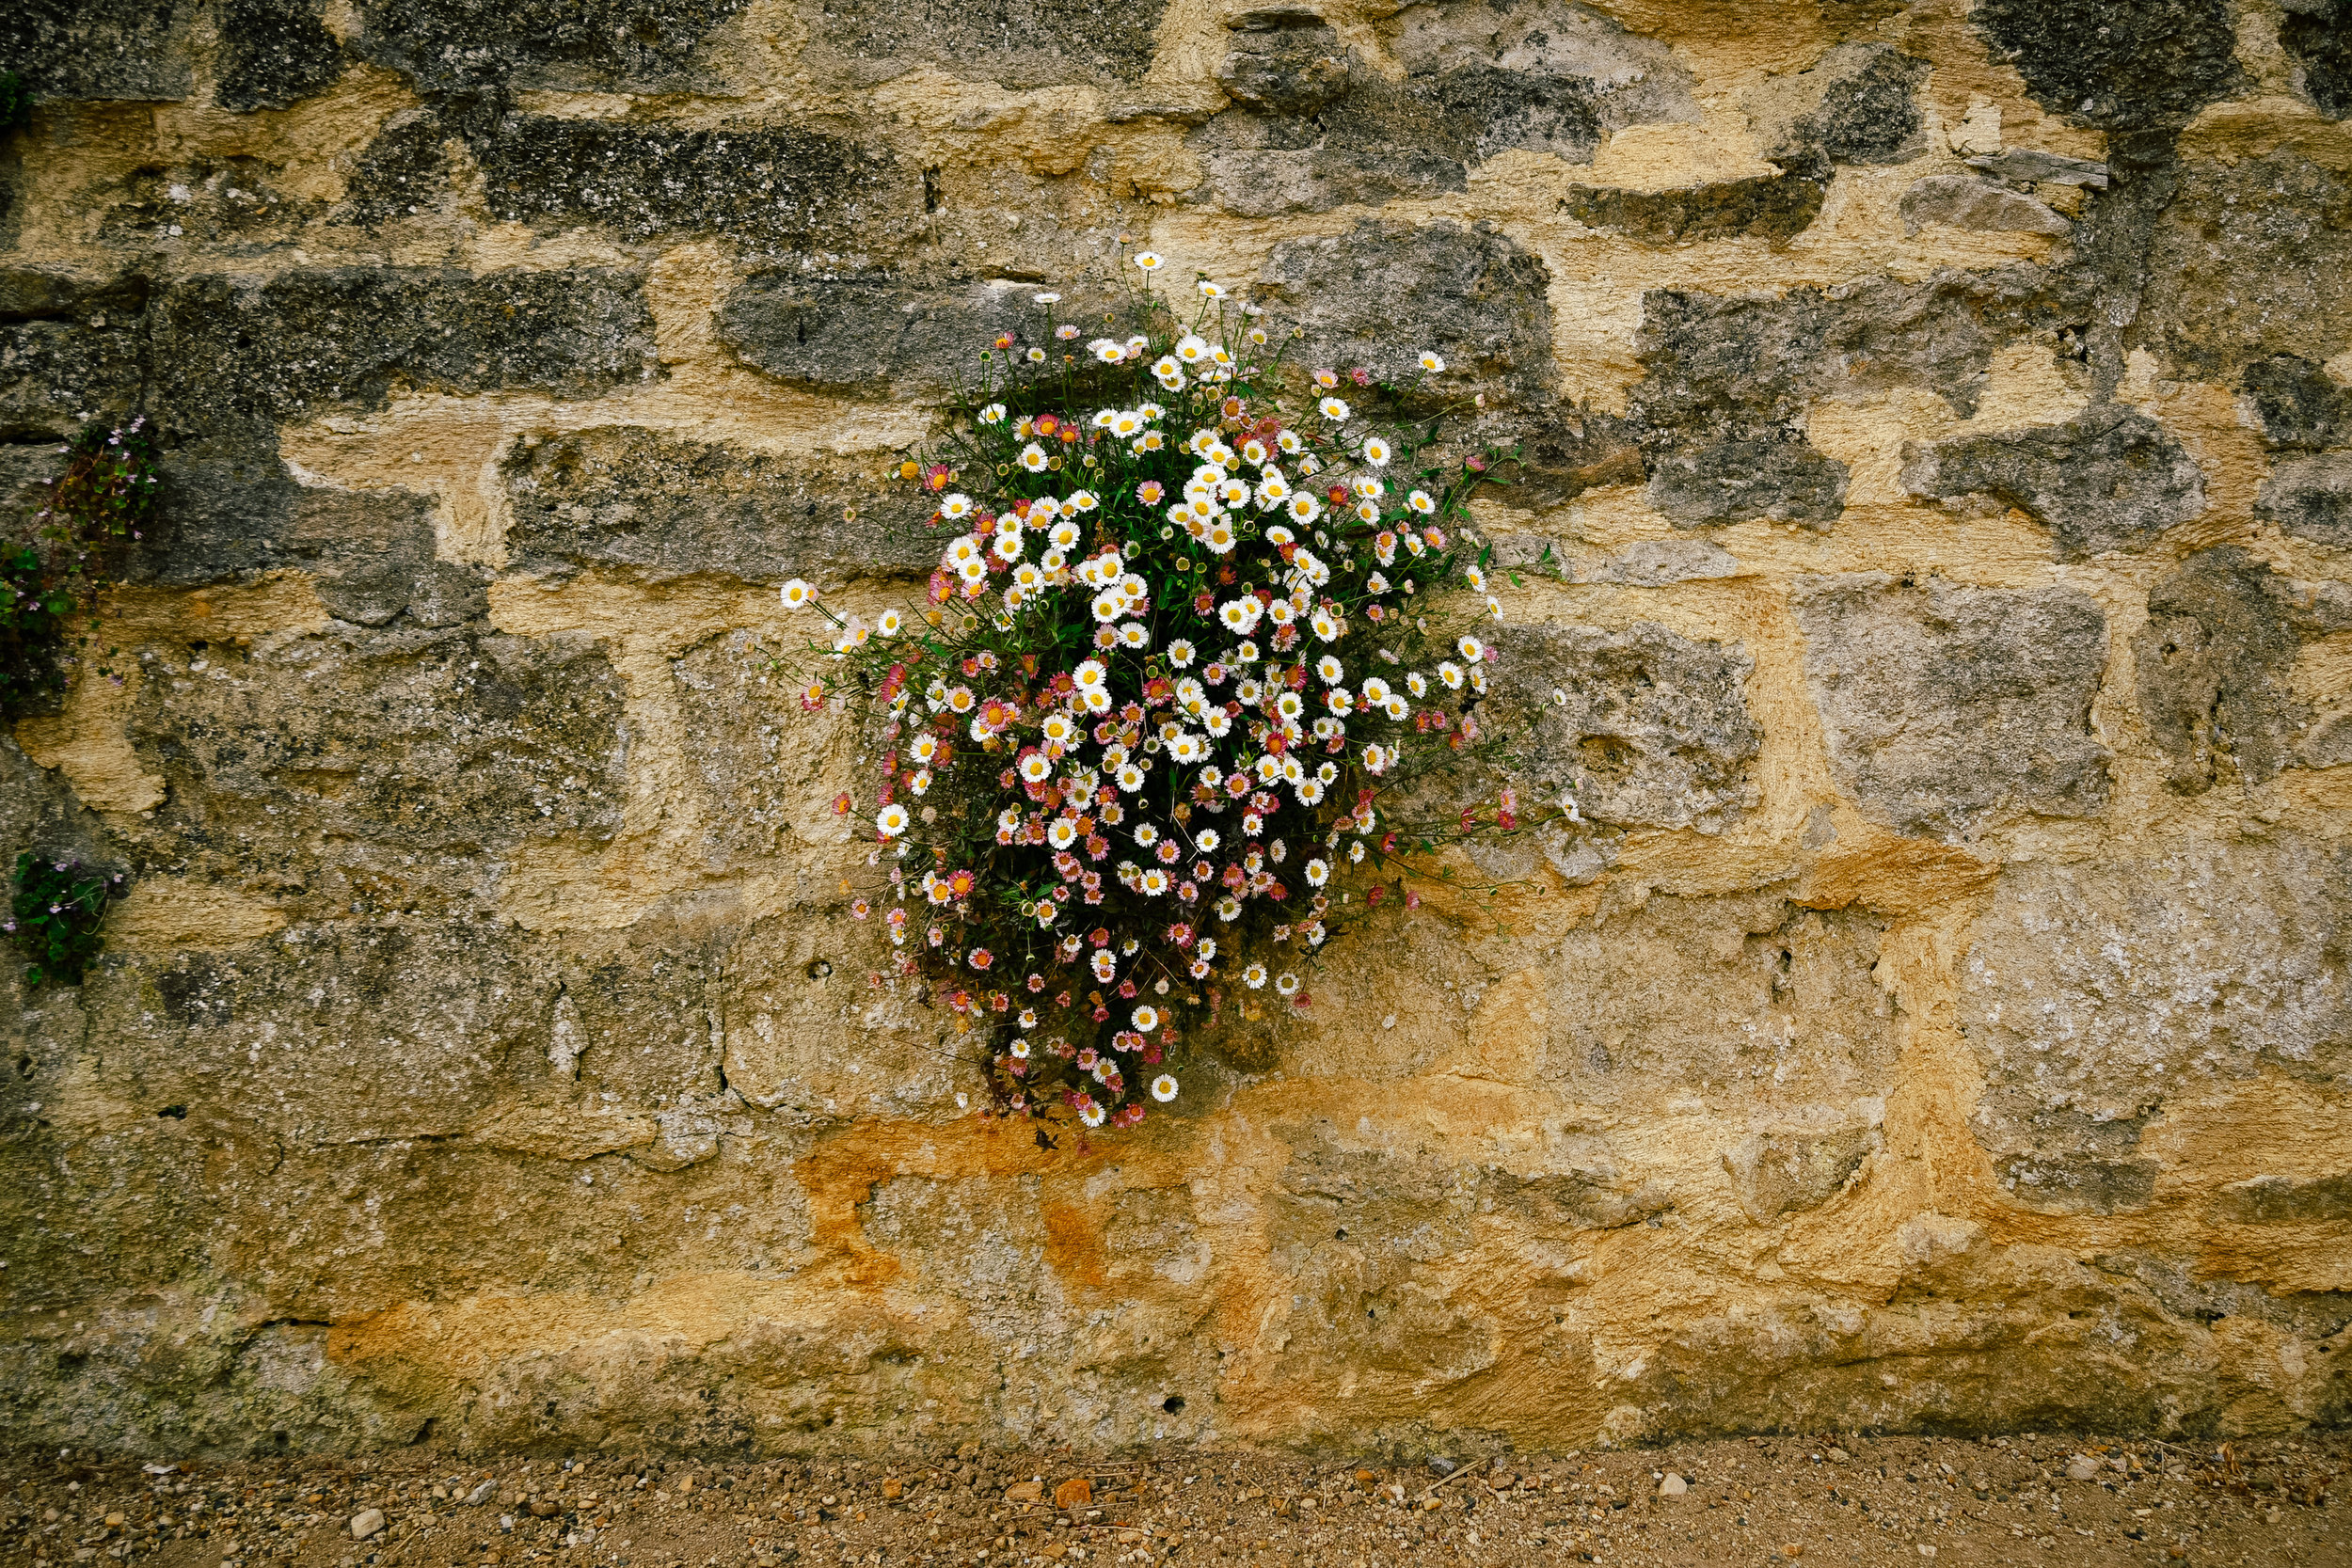 Flowers coming out of the cracks in the walls